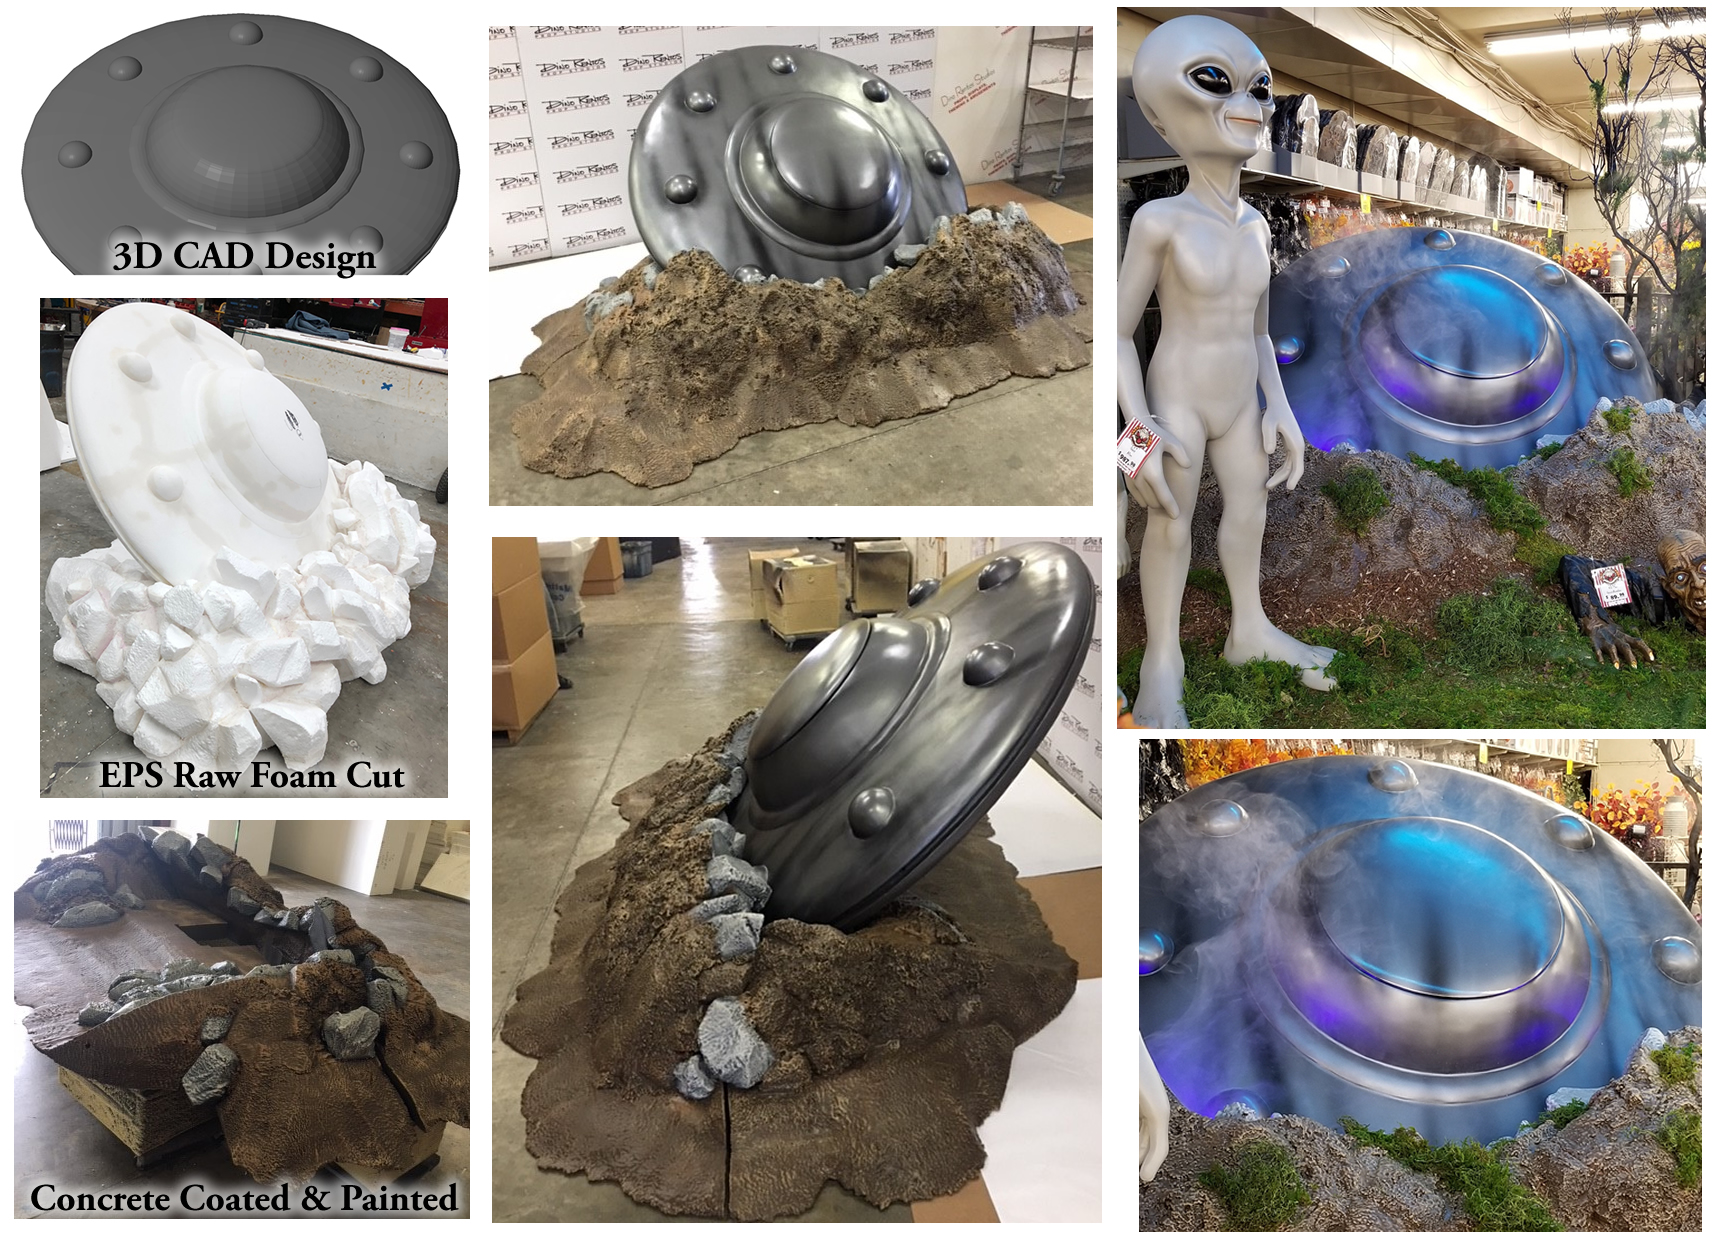 Custom Foam UFO Prop for Michaels Store Halloween Retail Display